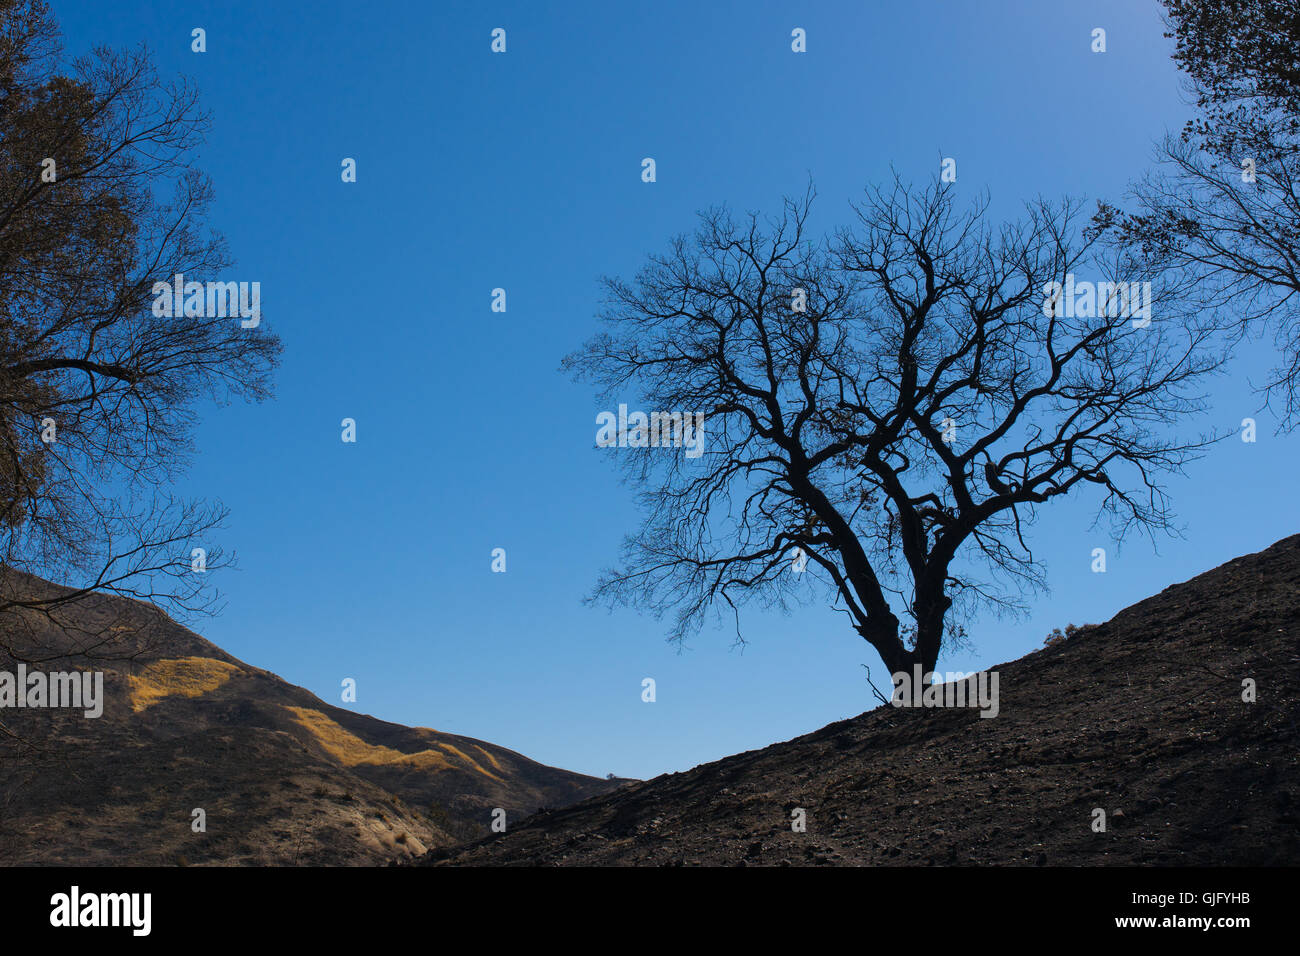 Silhouette of burned tree on the horizon on hills in southern California. - Stock Image